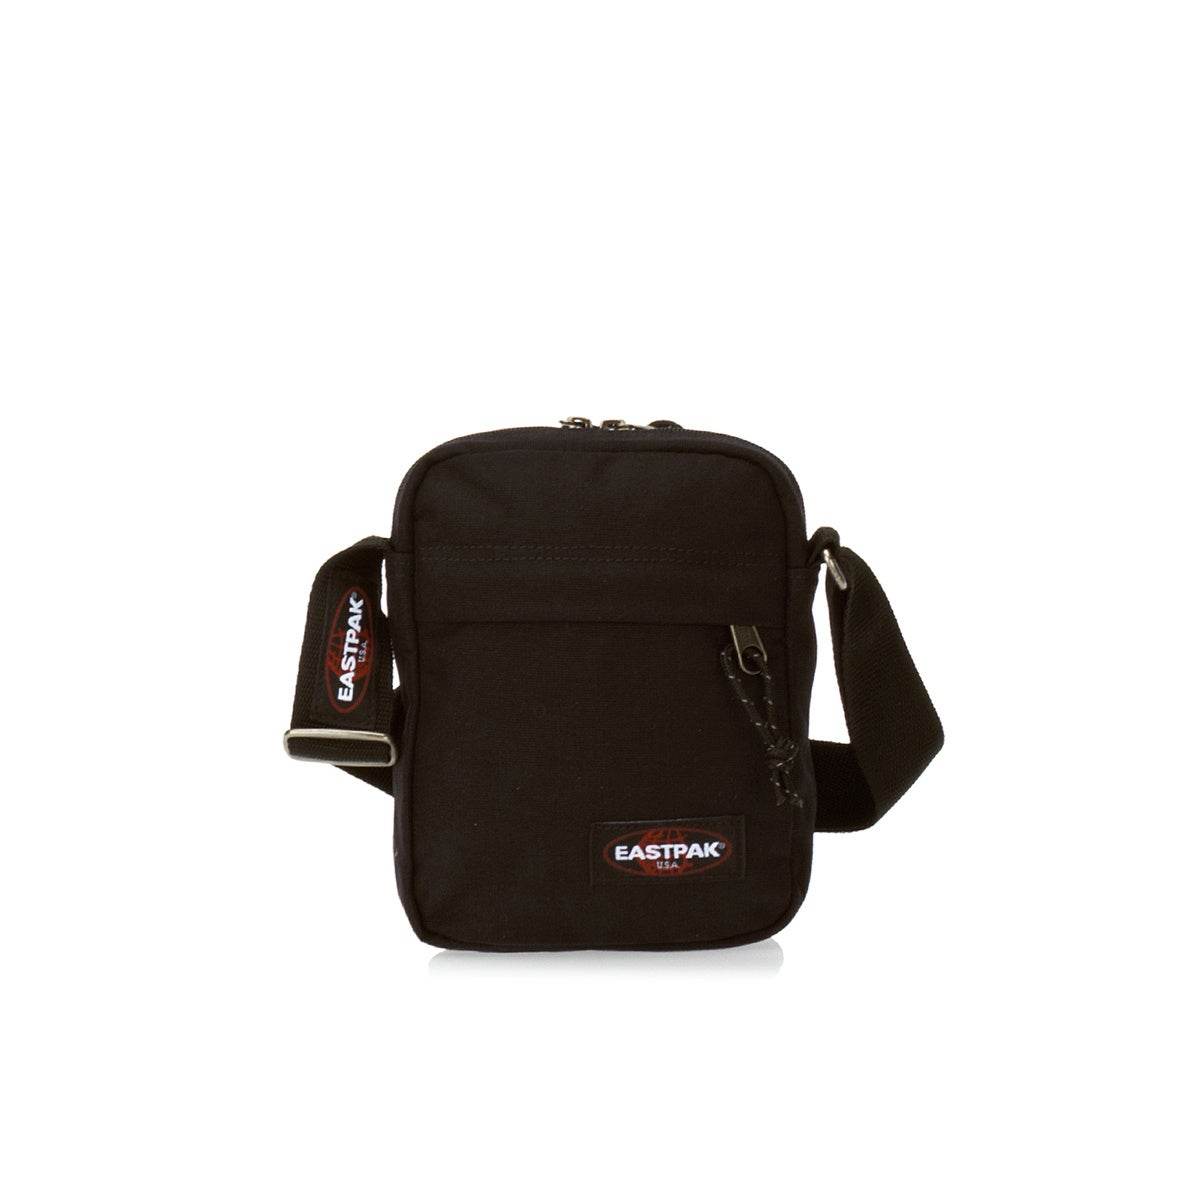 Eastpak The One Messenger Bag - Black